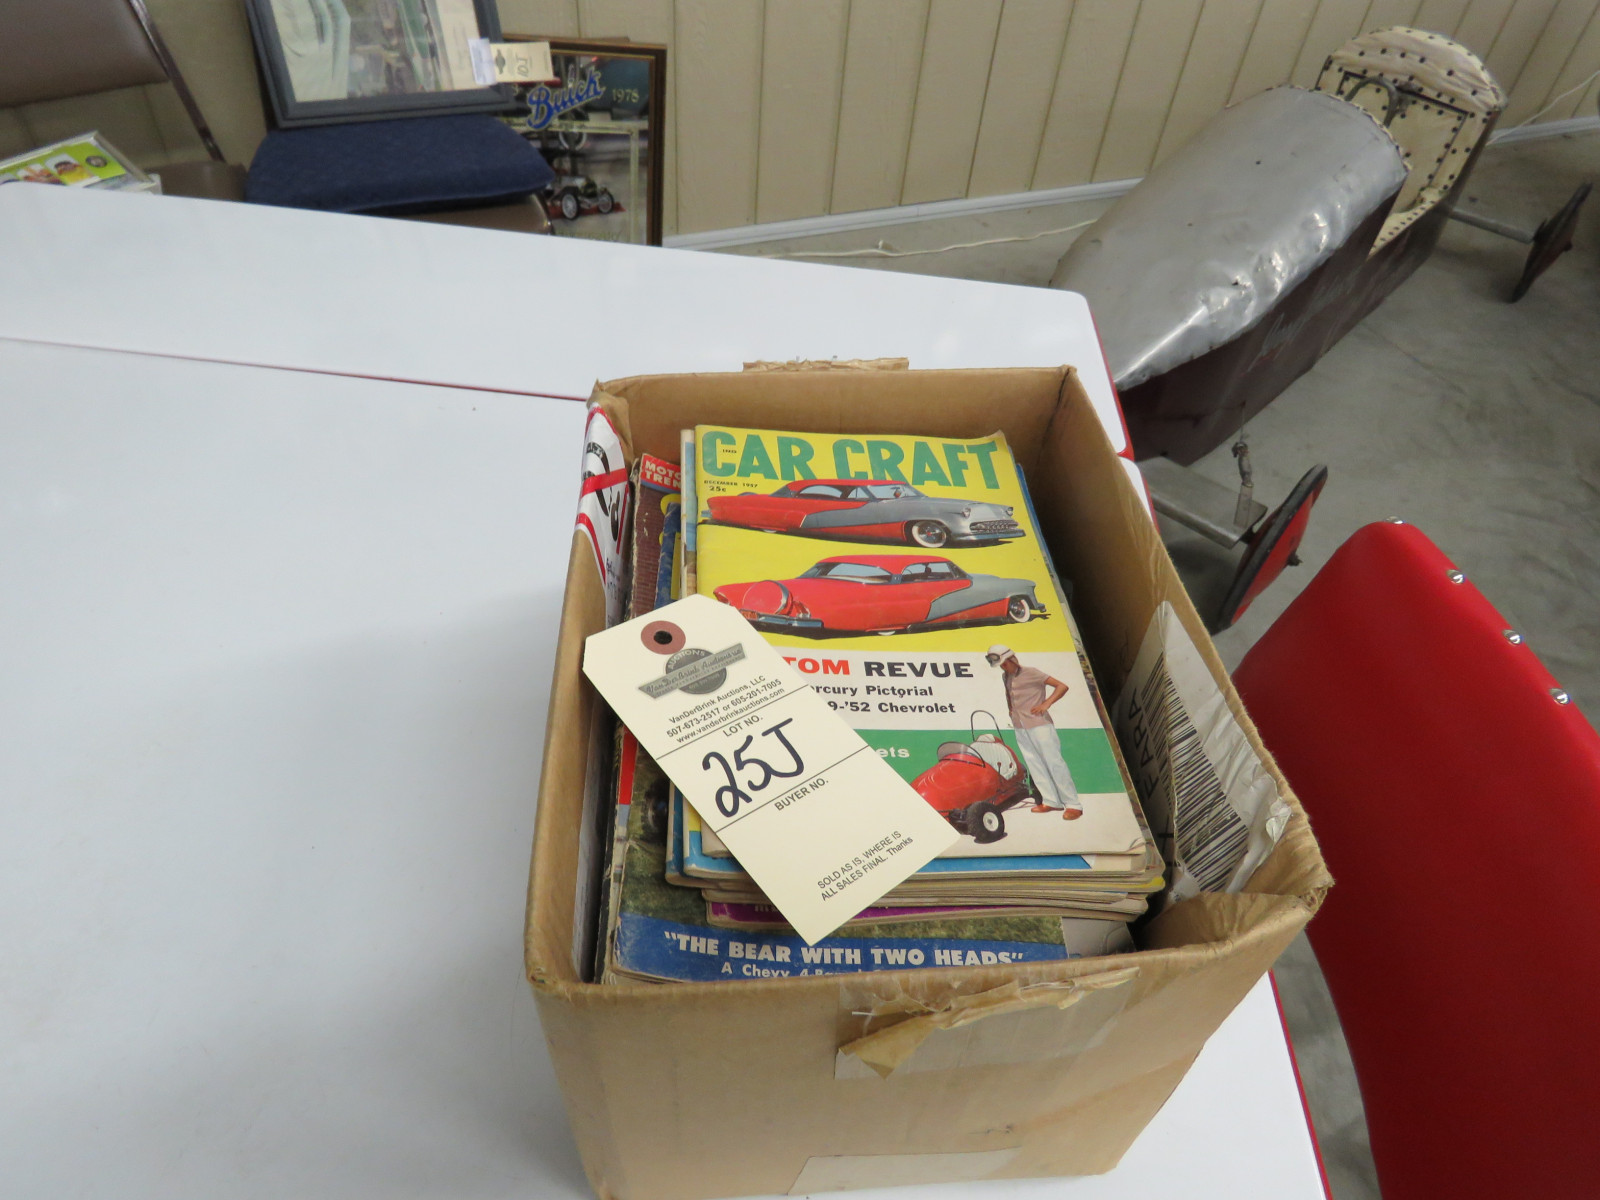 Vintage Car Craft Magazines - Image 1